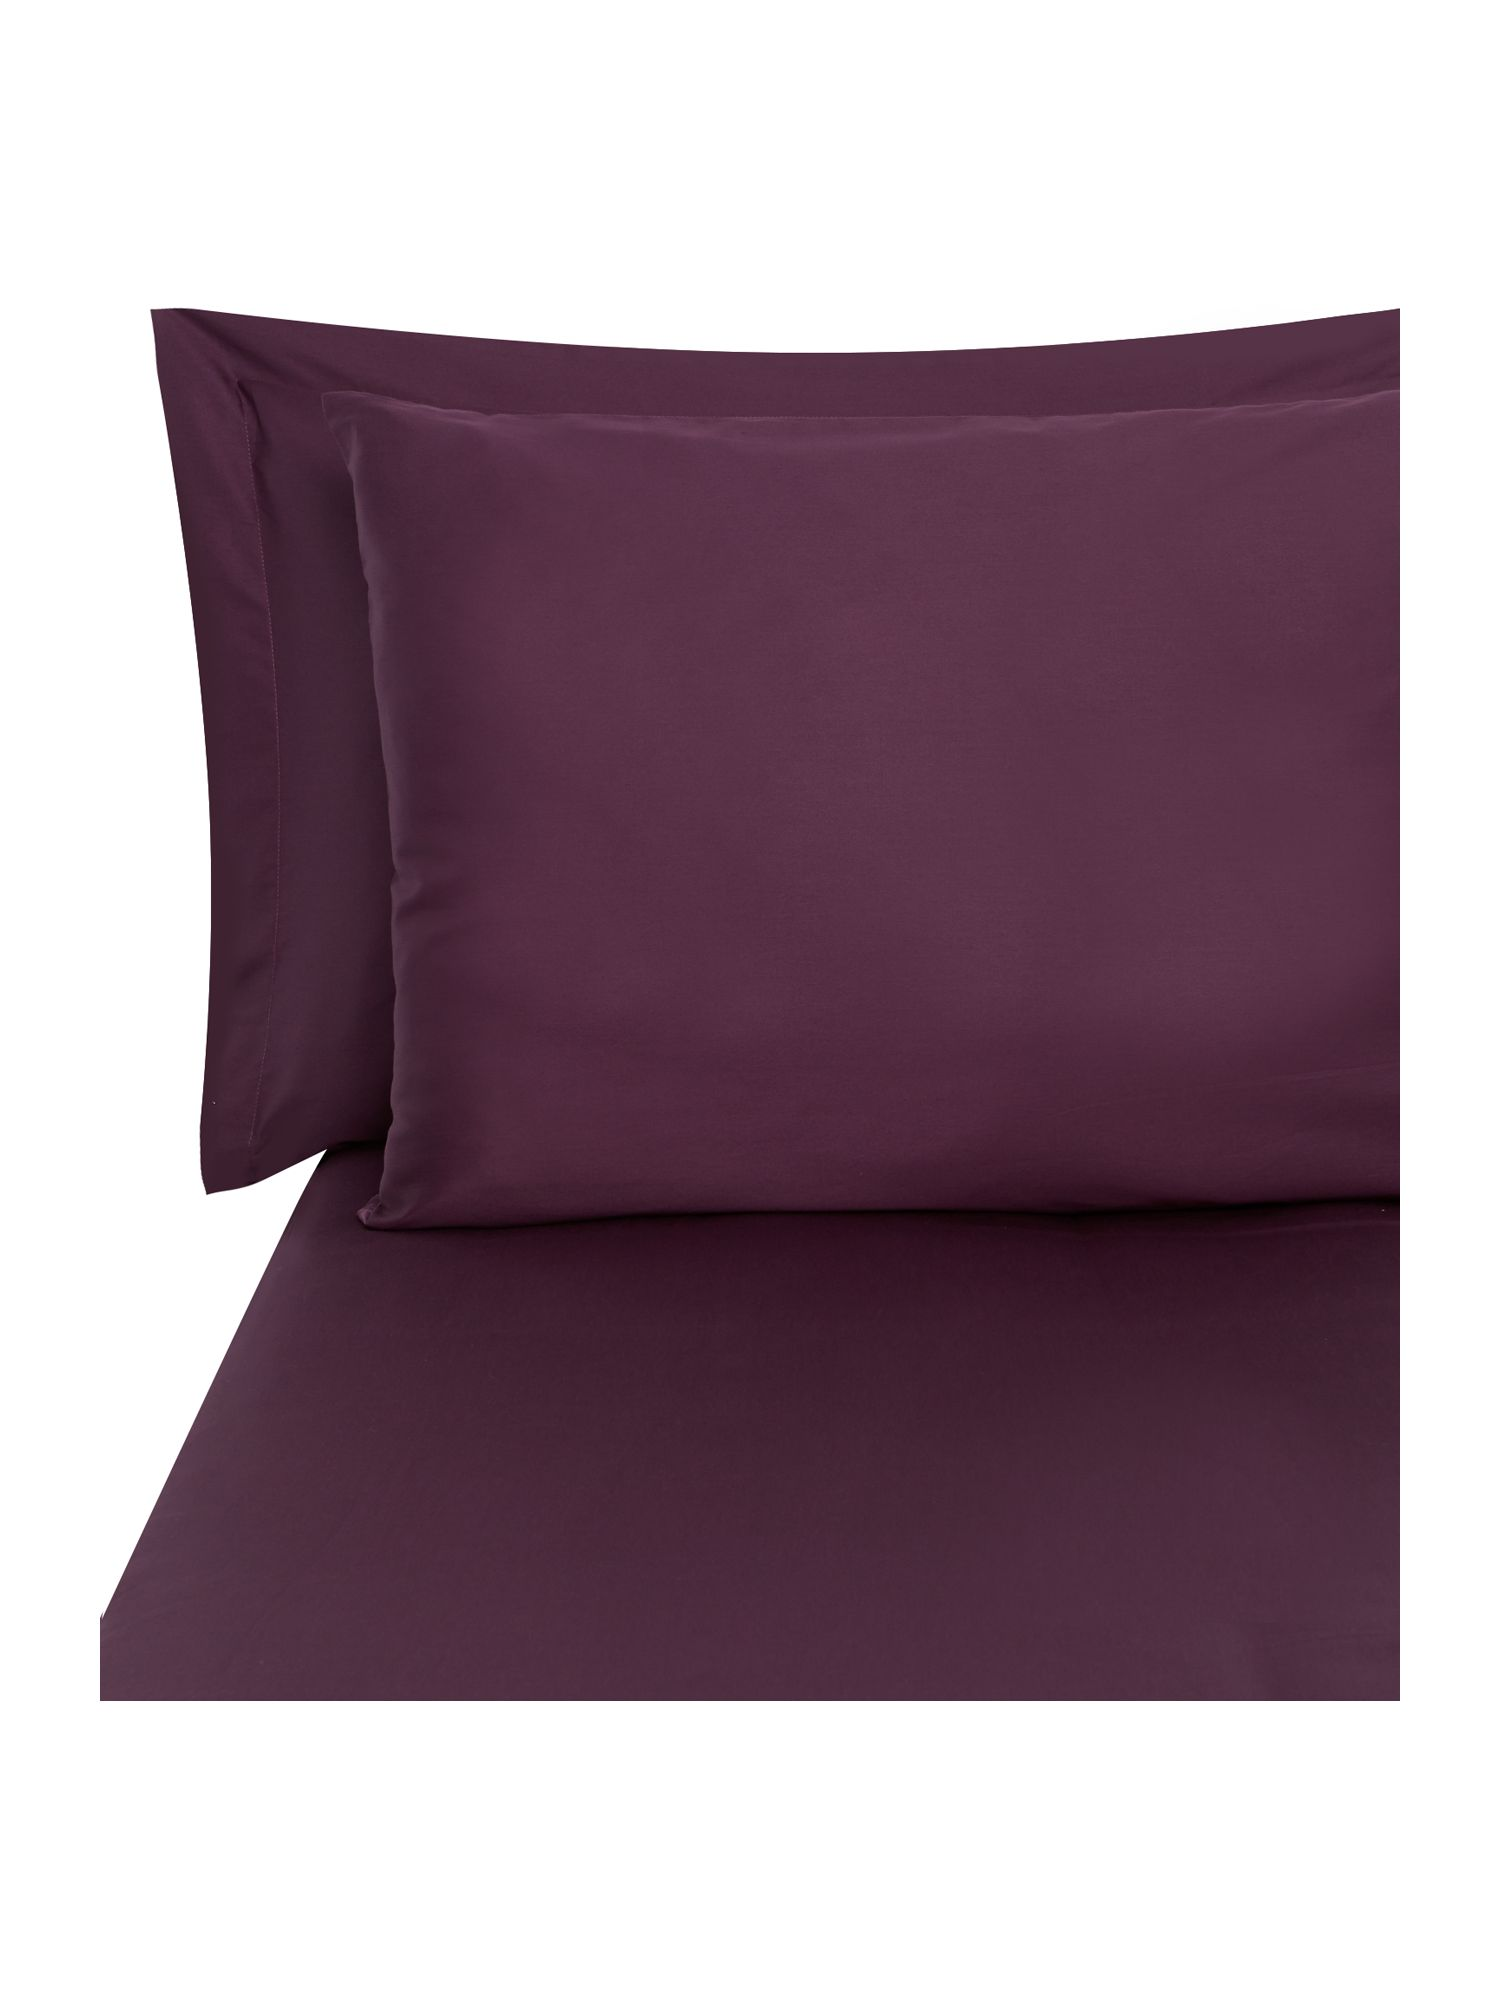 Amethyst fitted sheet super king